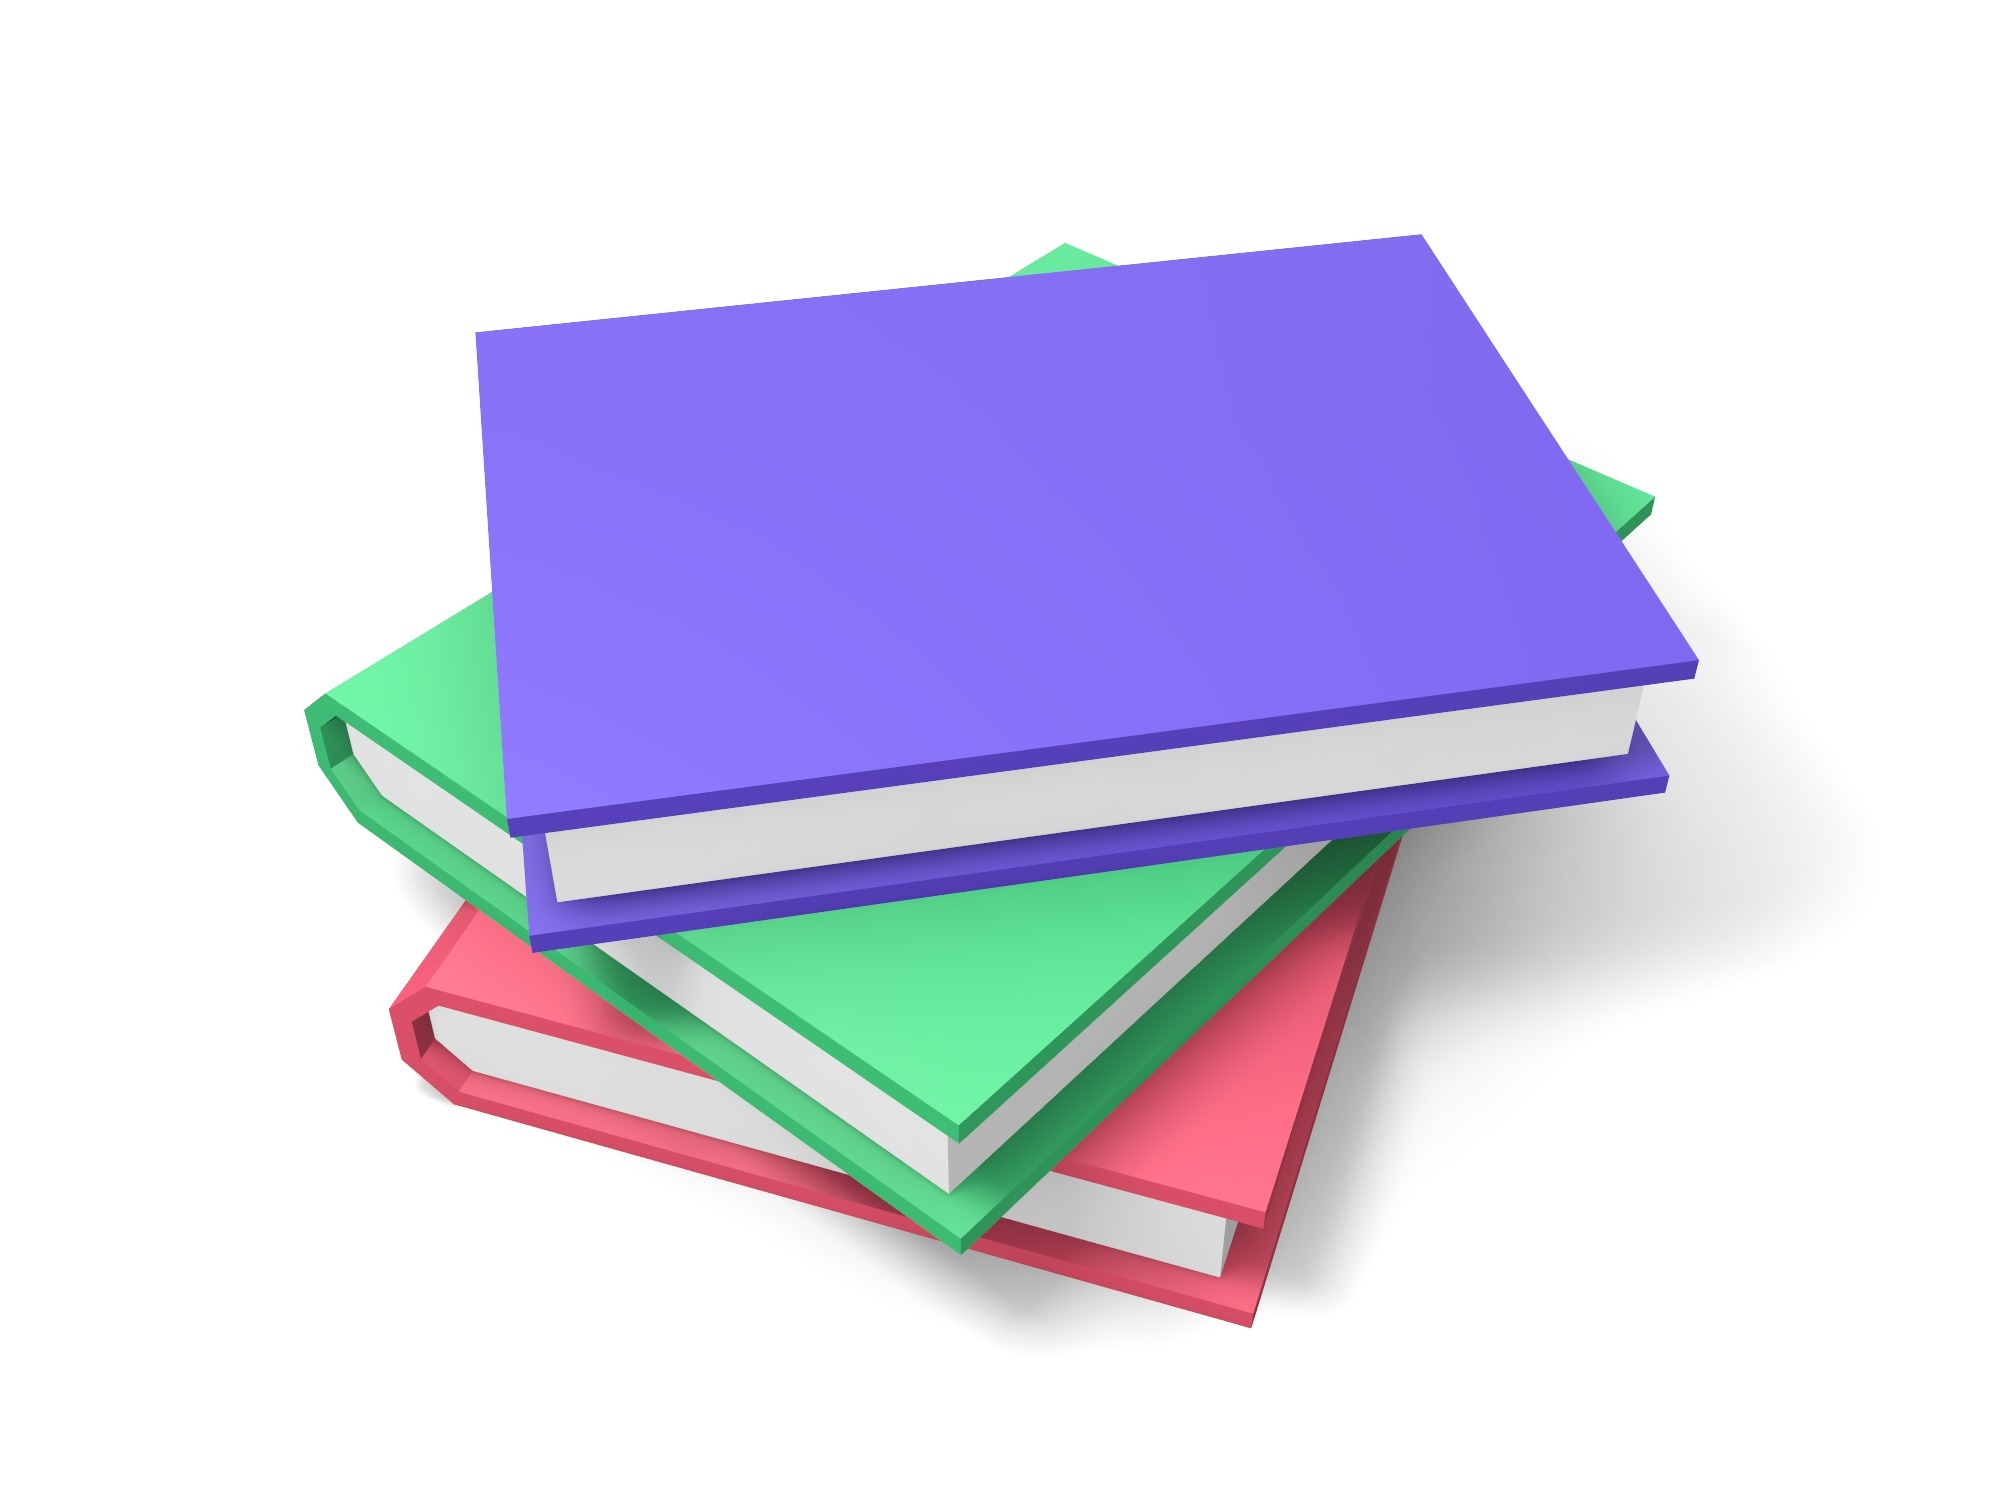 A stack of 3 colored books - 3D design by Vectary assets Aug 14, 2018